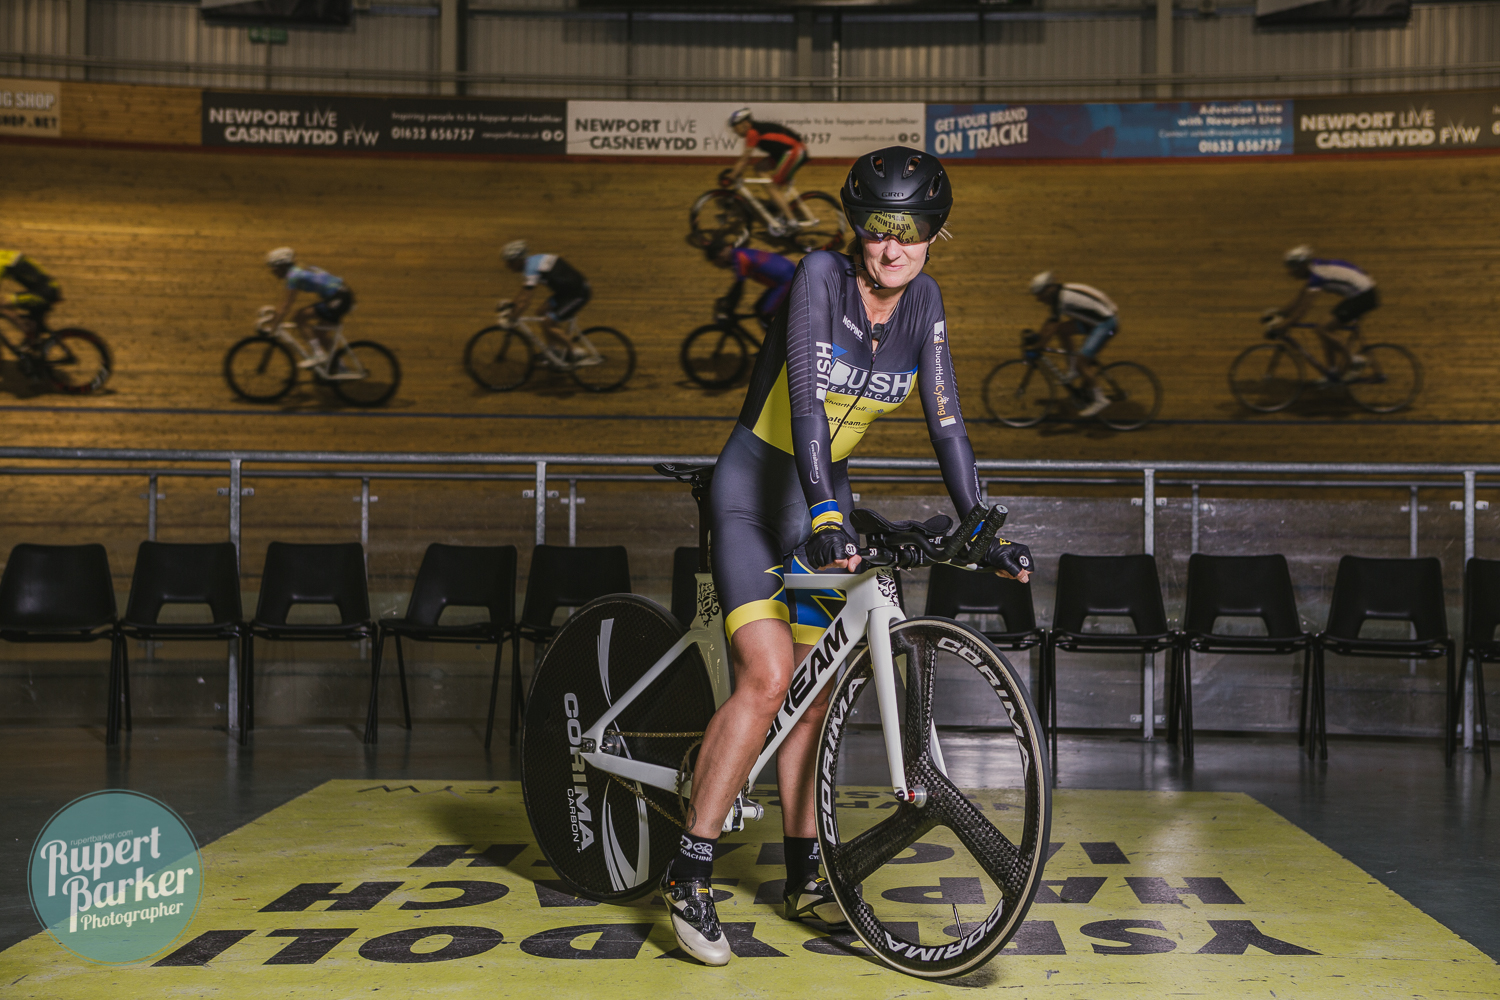 jo Buckland cyclist velodrome newport track cycling portrait colour monochrome